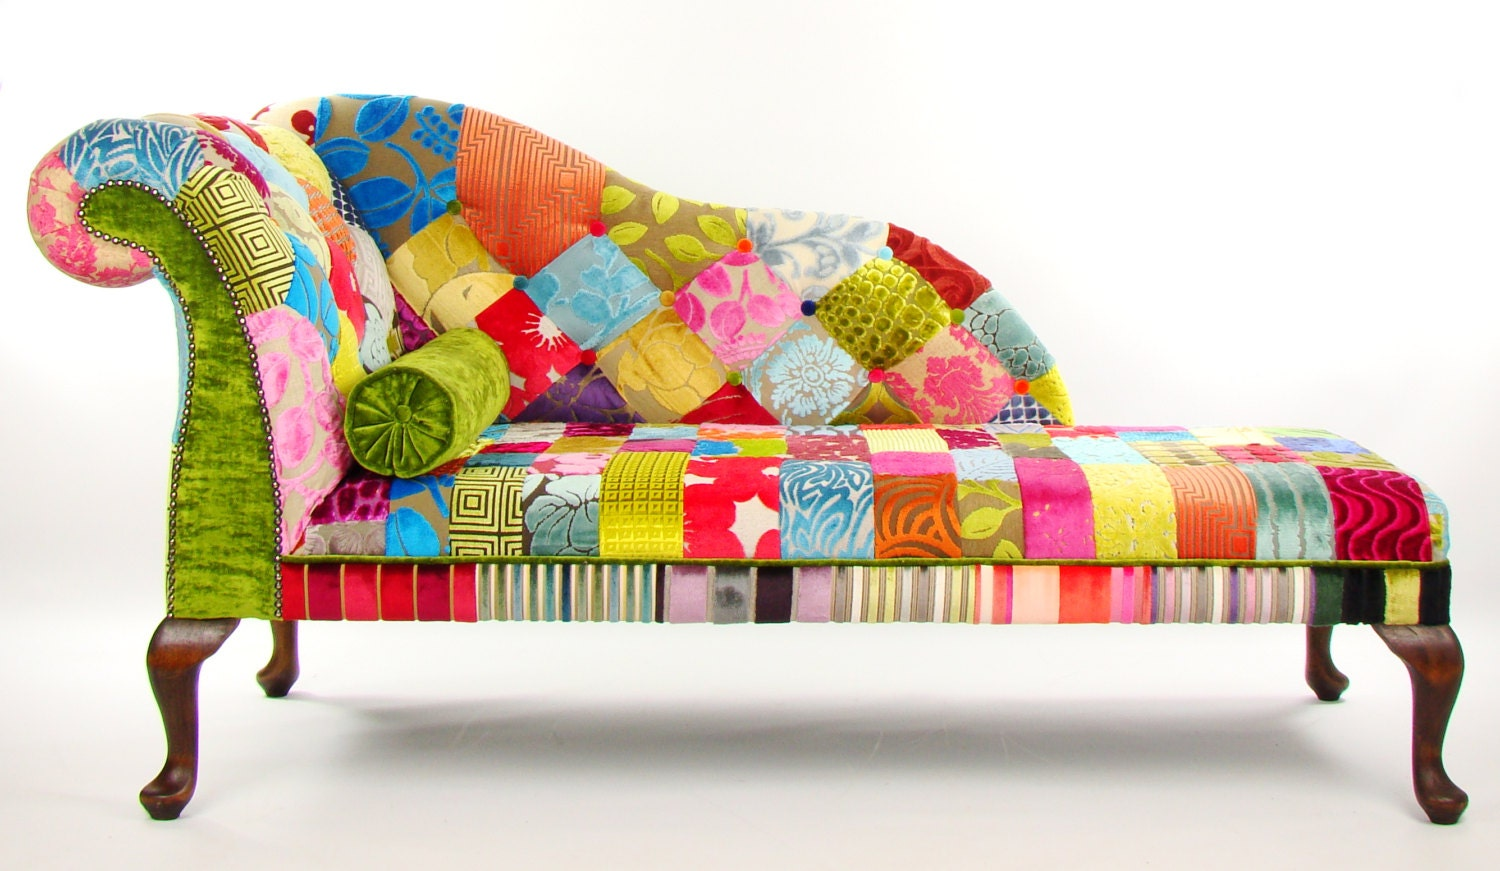 Bespoke patchwork lhf chaise longue designers guild fabric for Chaise patchwork